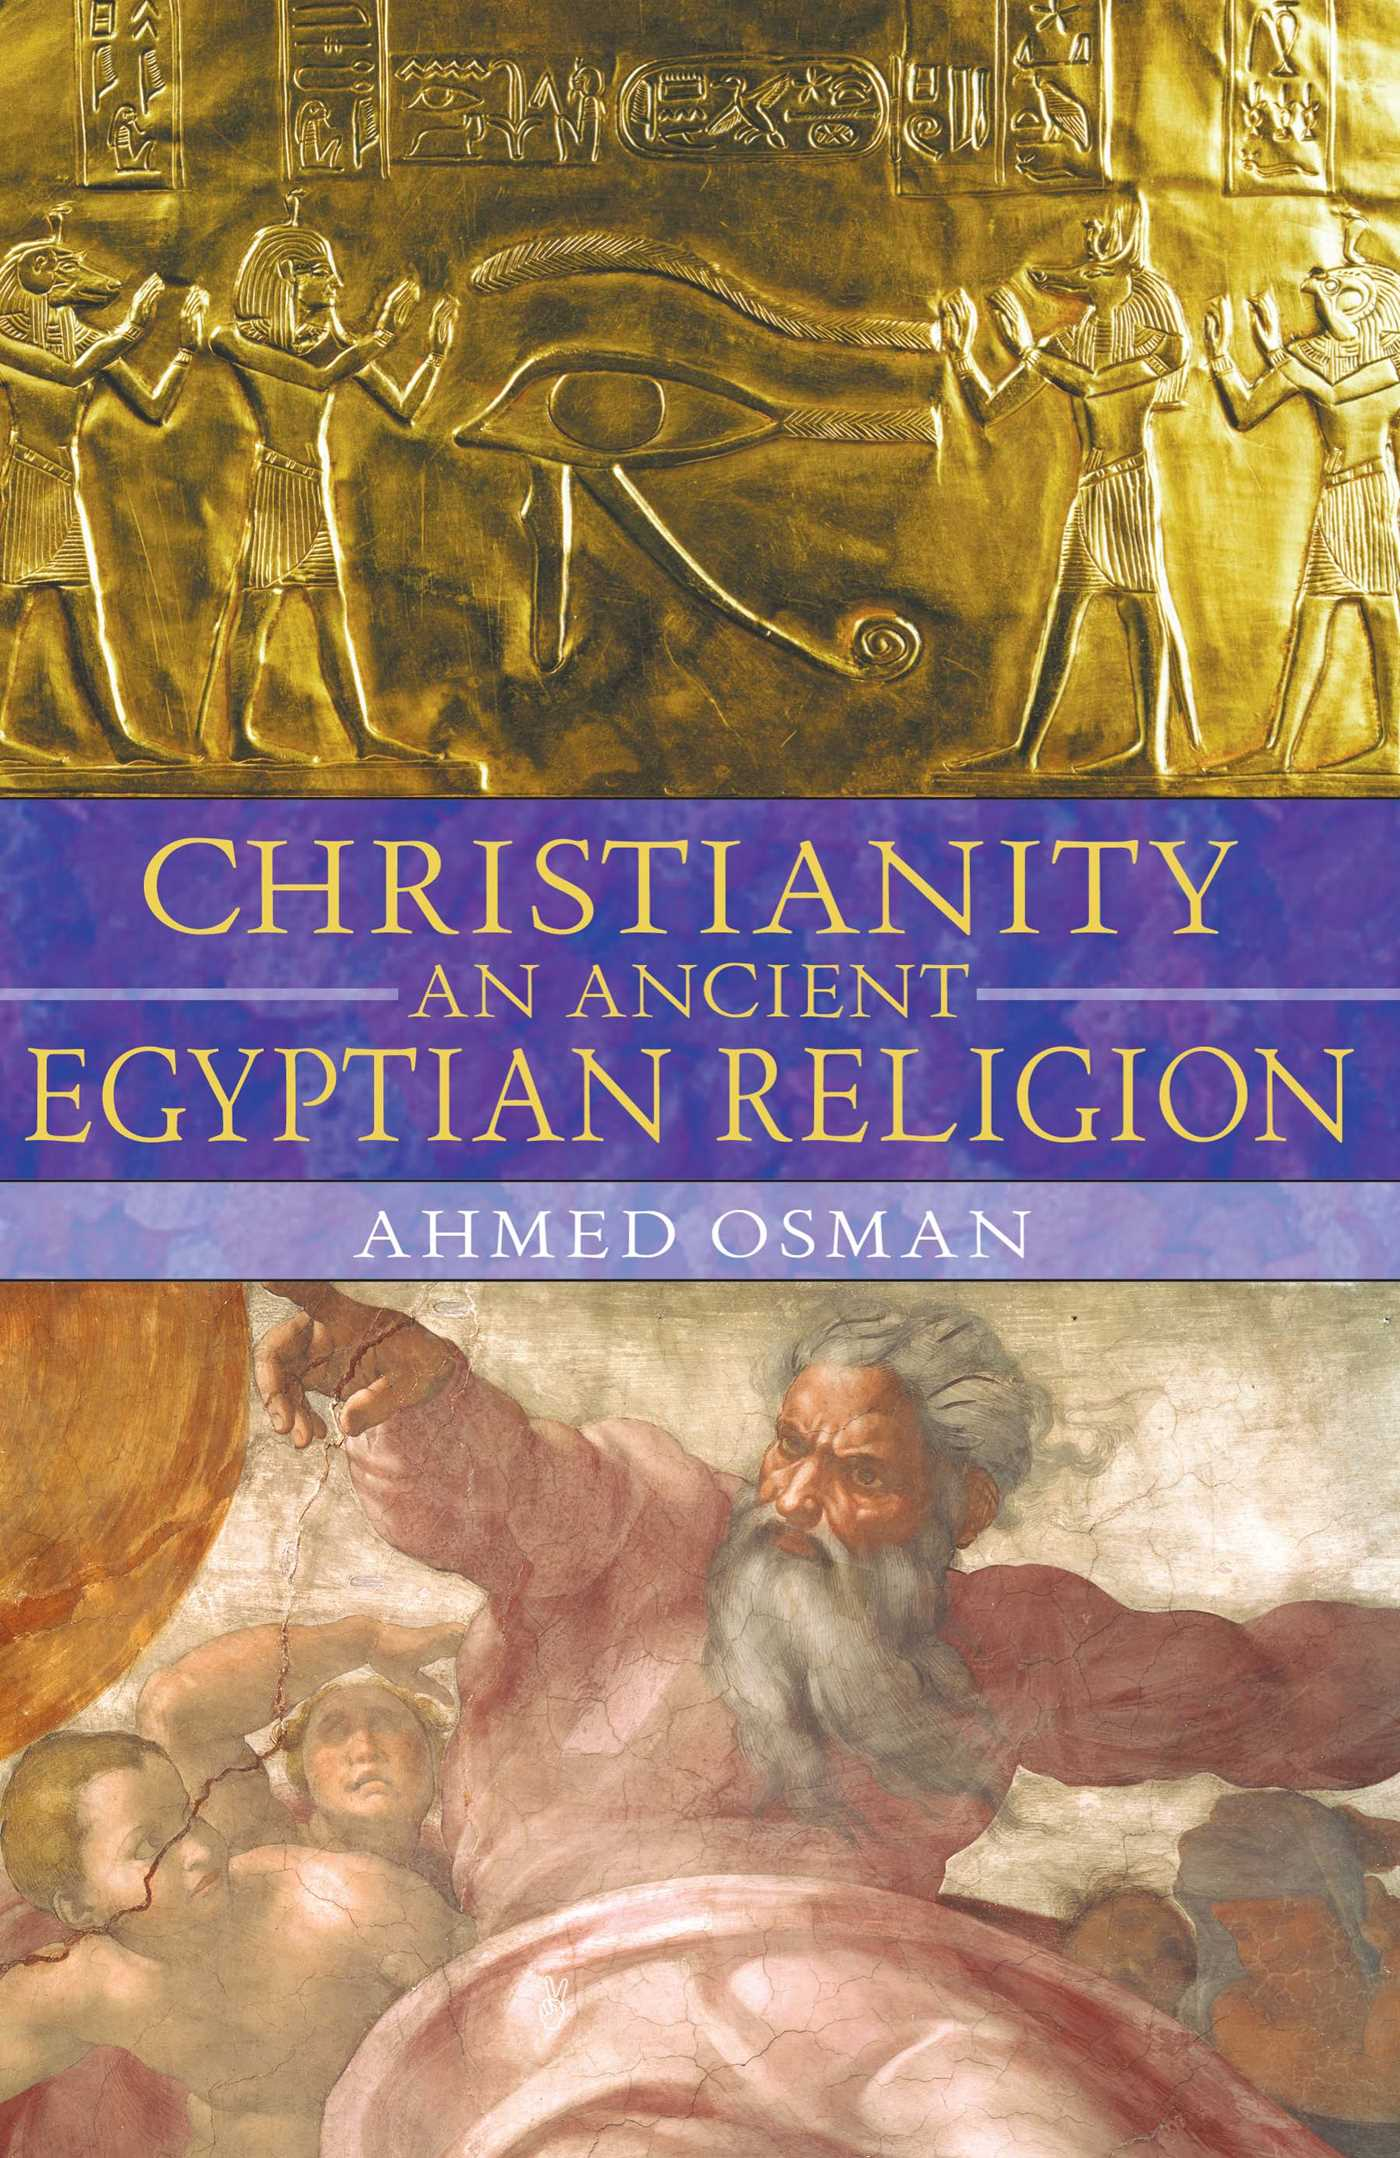 Christianity-an-ancient-egyptian-religion-9781591430469_hr